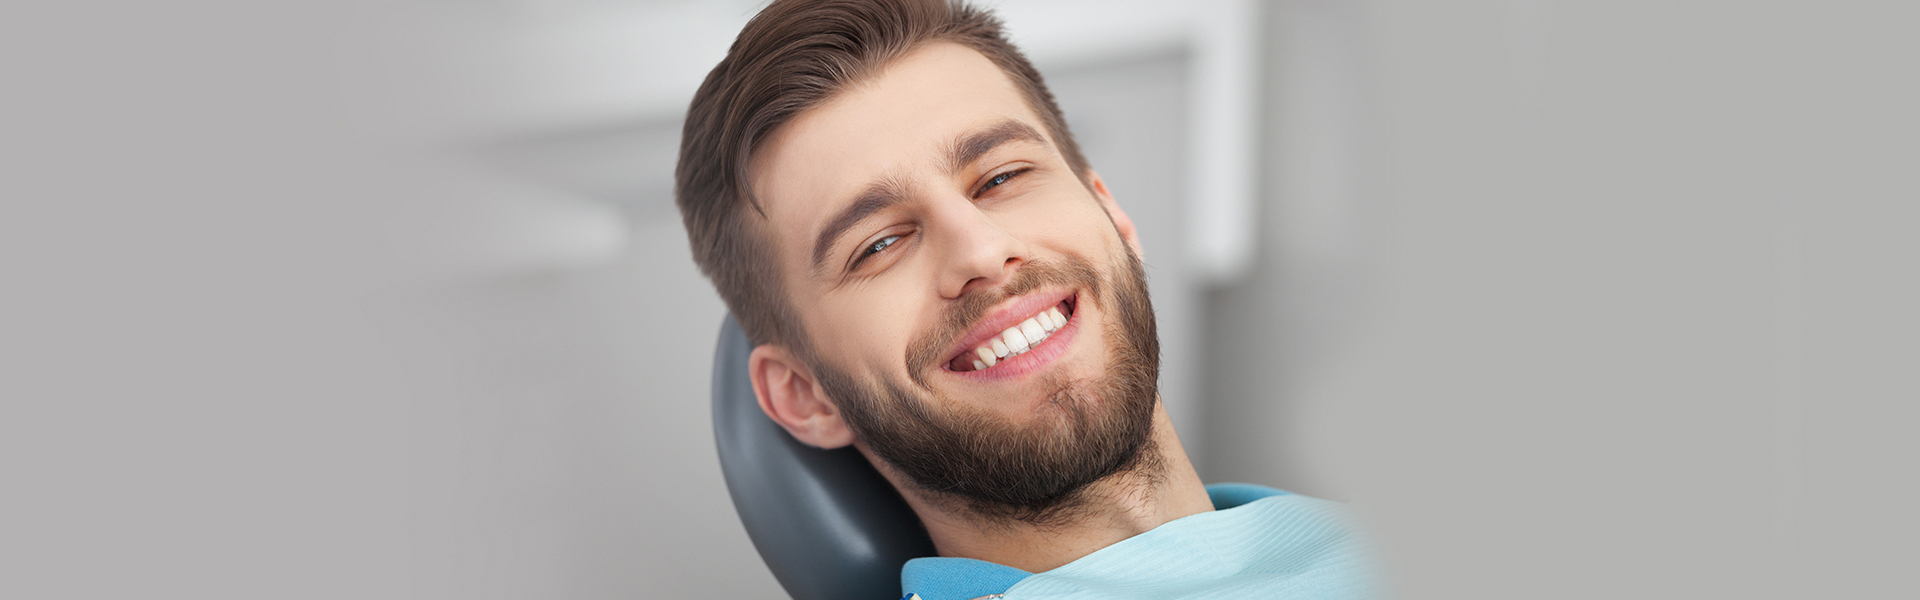 What Will You Do If You Have a Cavity That Is Too Large for a Filling?